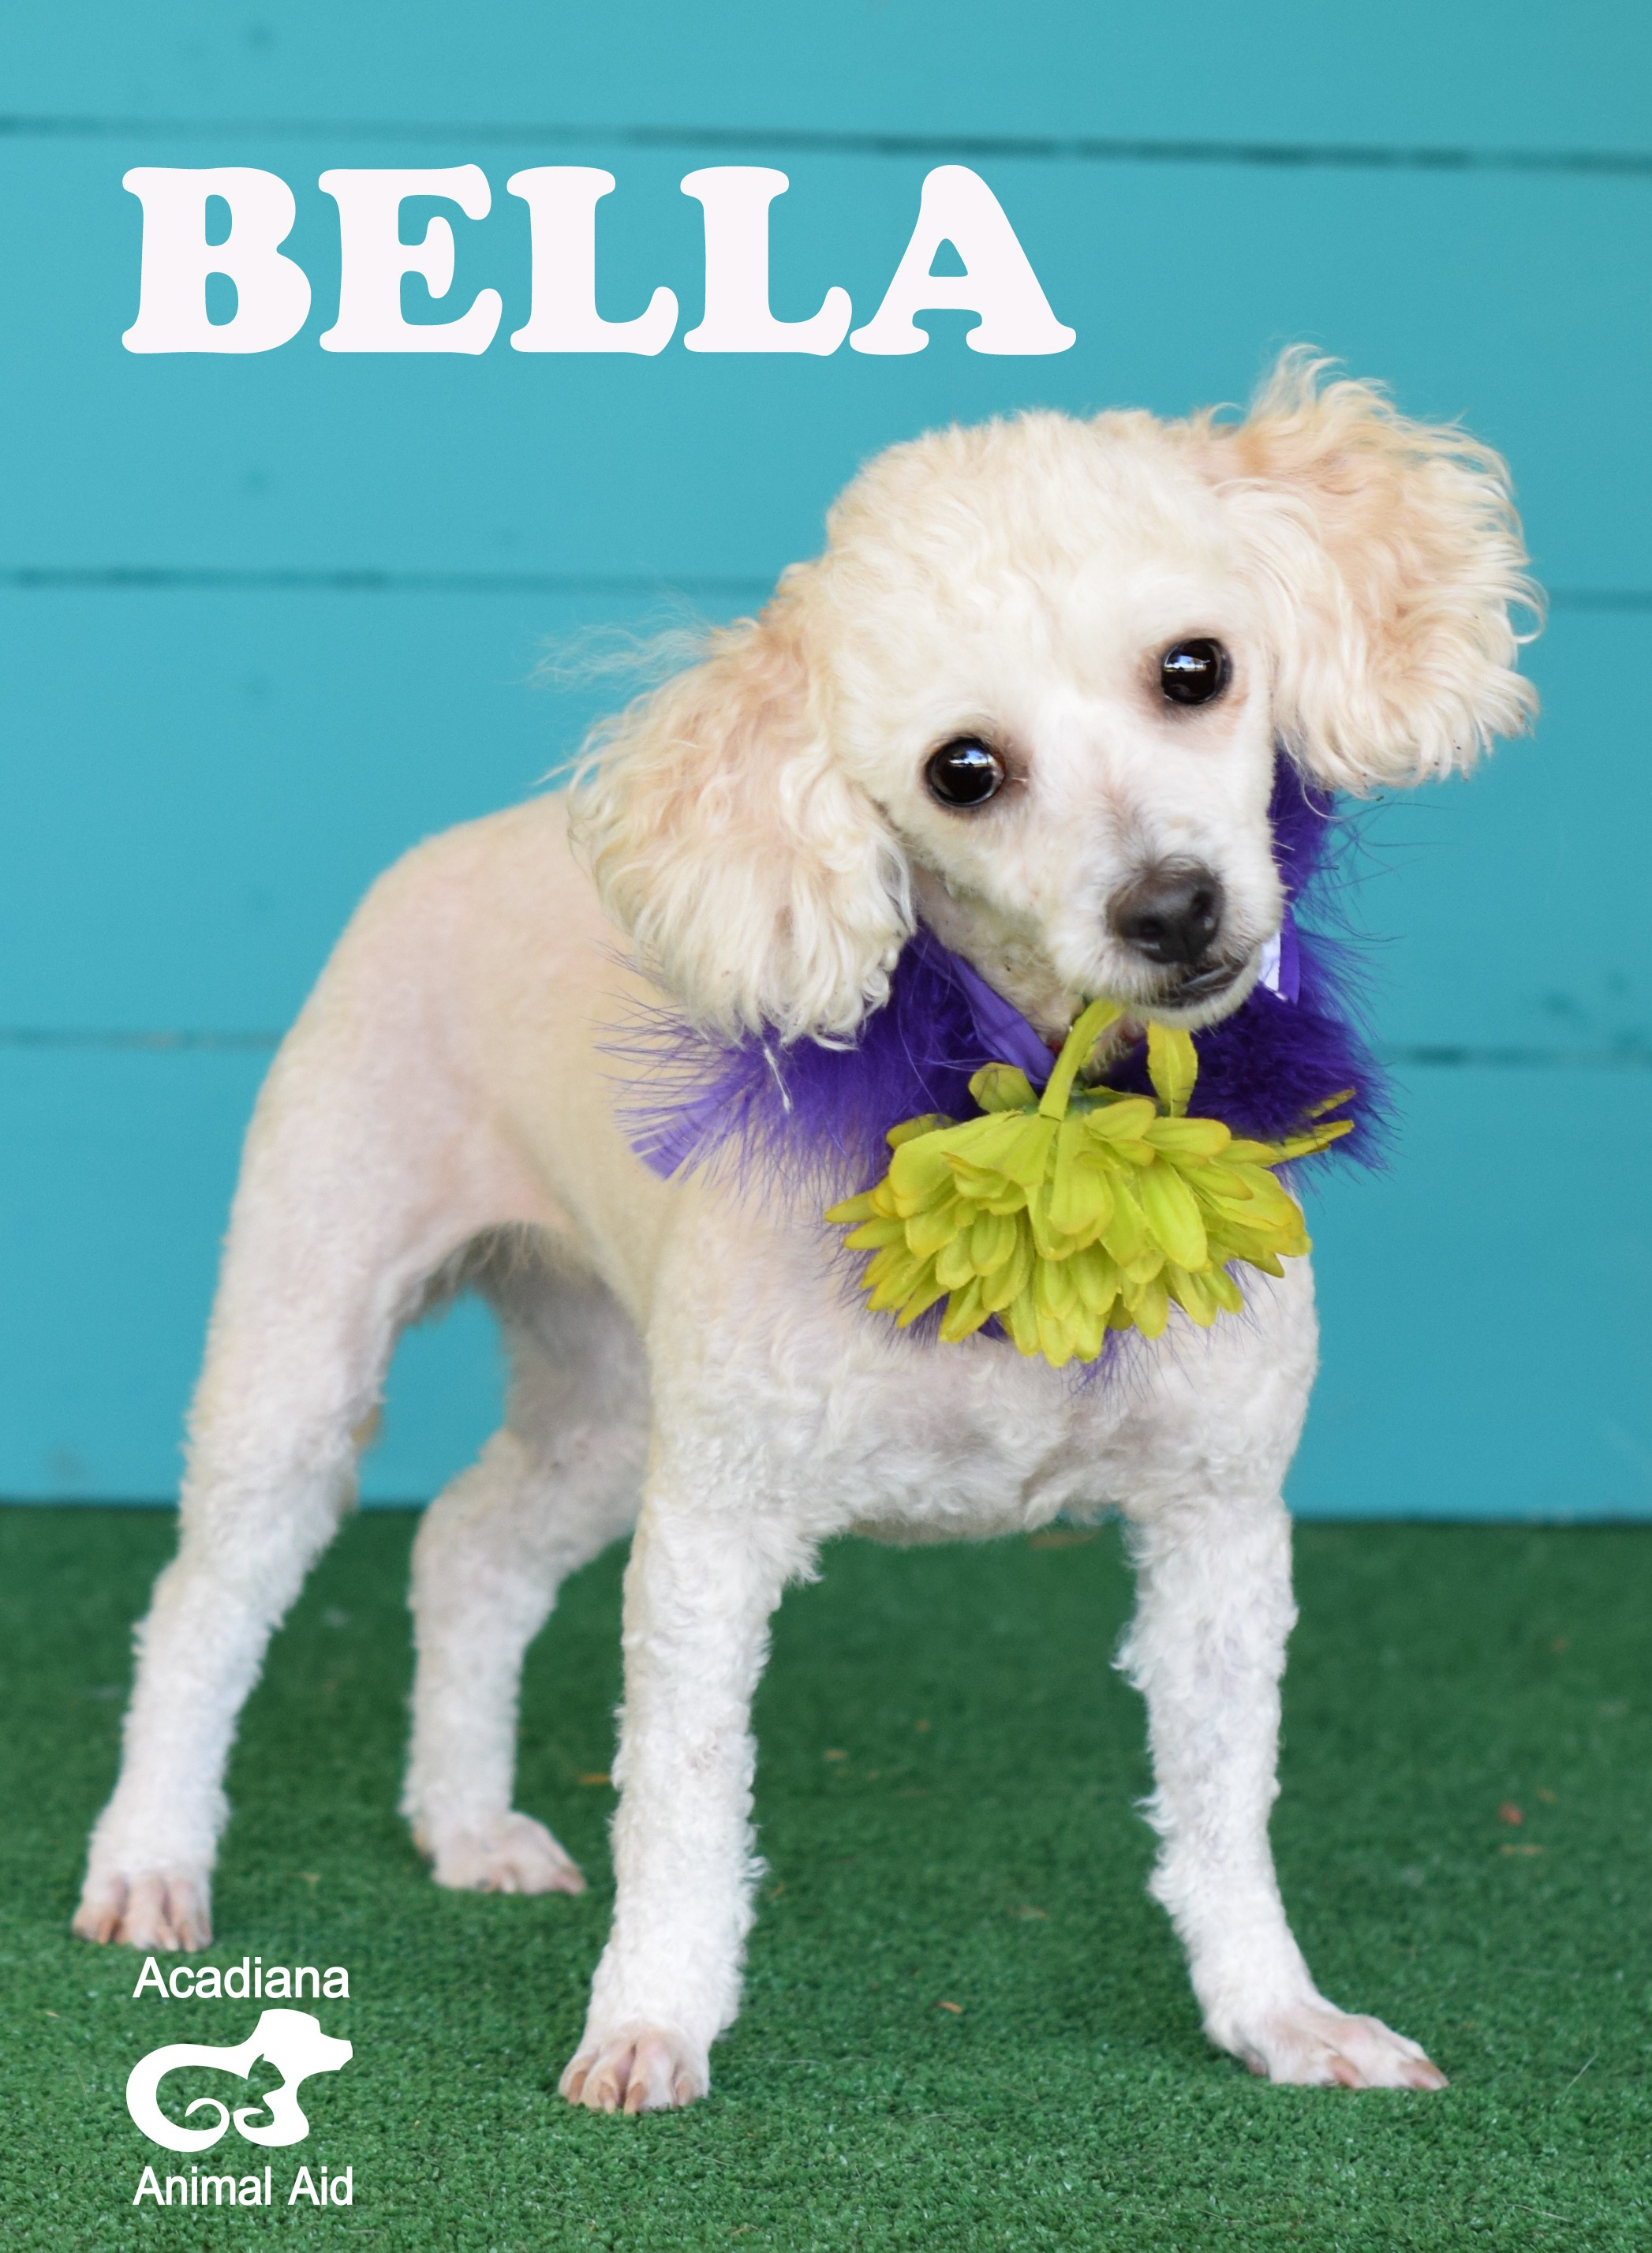 Sarasota Fl Poodle Toy Or Tea Cup Meet Bella A Pet For Adoption